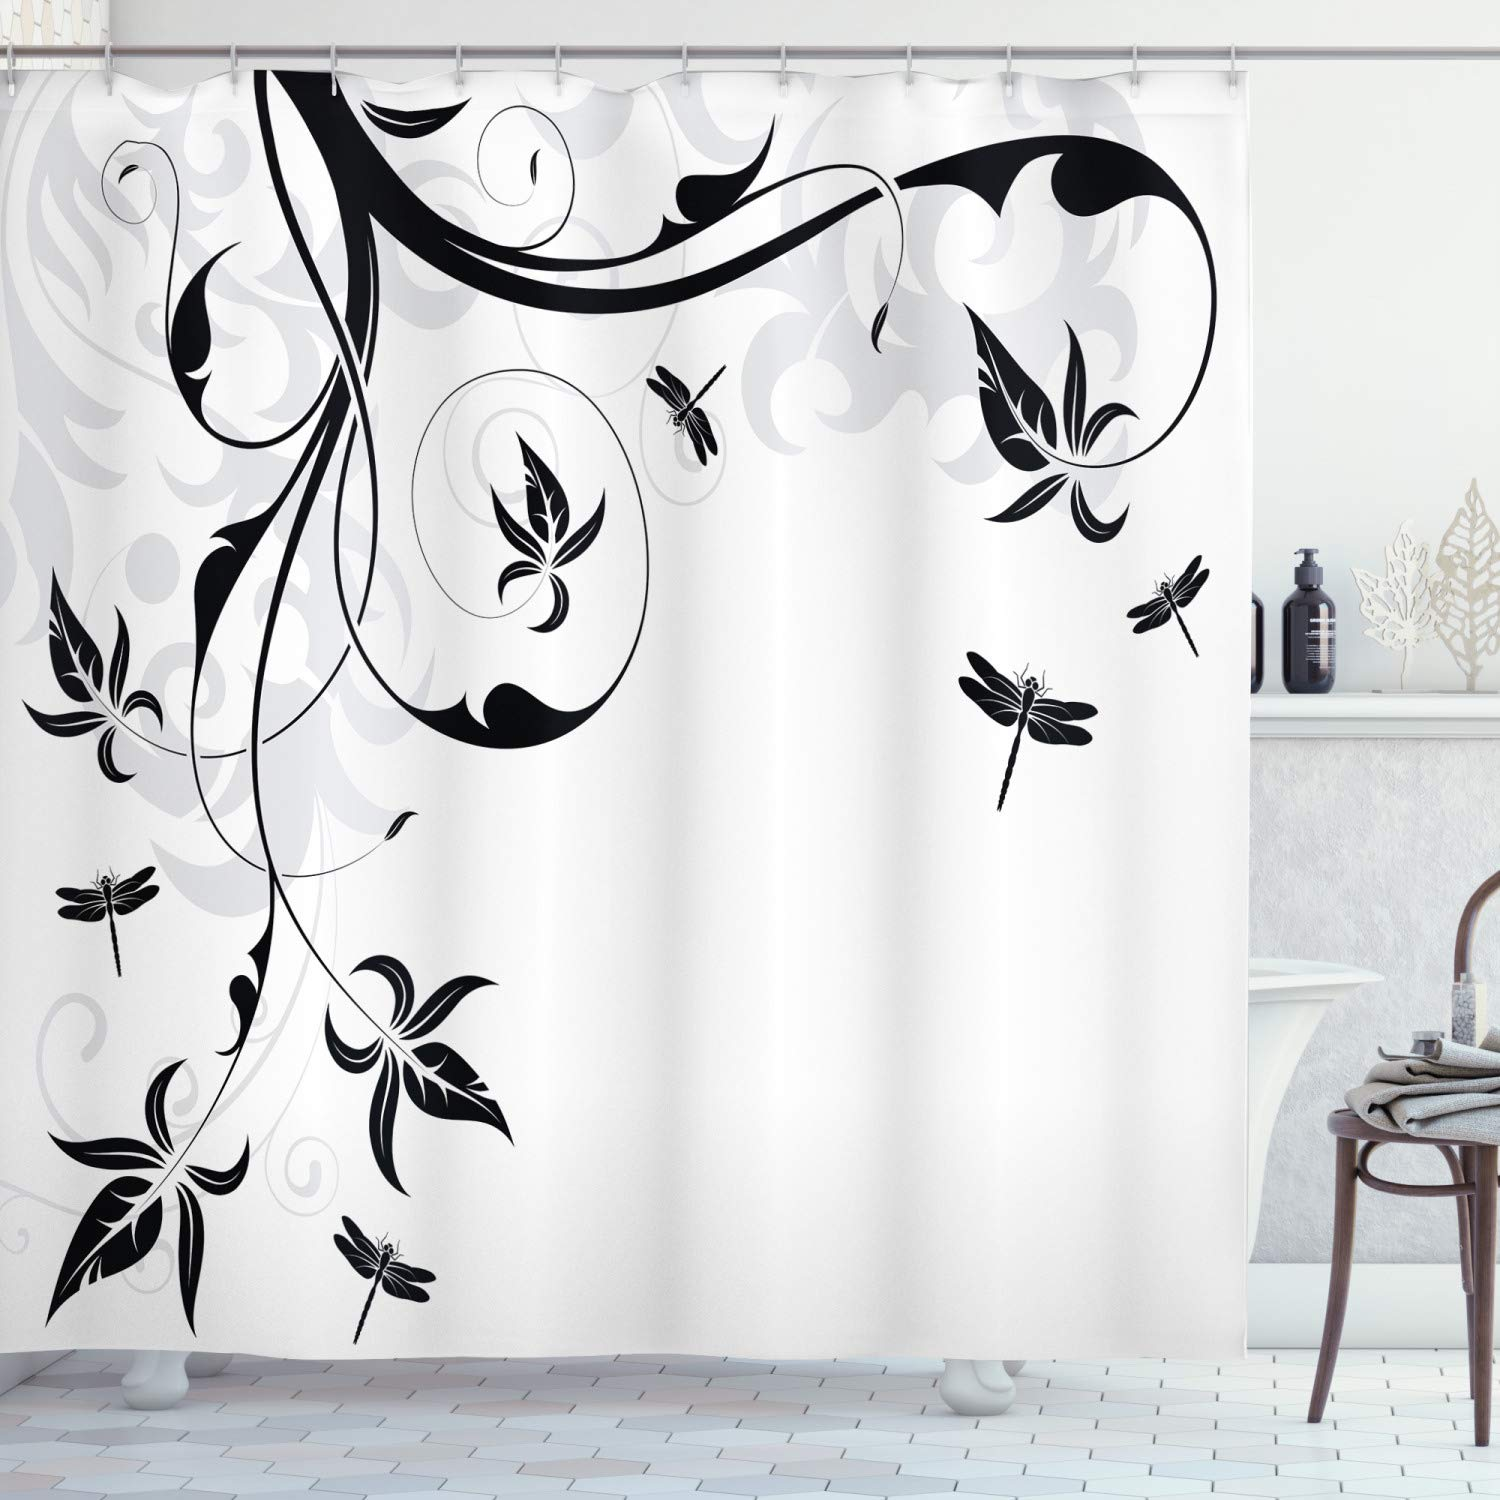 Ambesonne Dragonfly Shower Curtain, Swirled Floral Background with Damask Curl Branches and Leaves Print, Fabric Bathroom Decor Set with Hooks, 70 inches, Light Grey